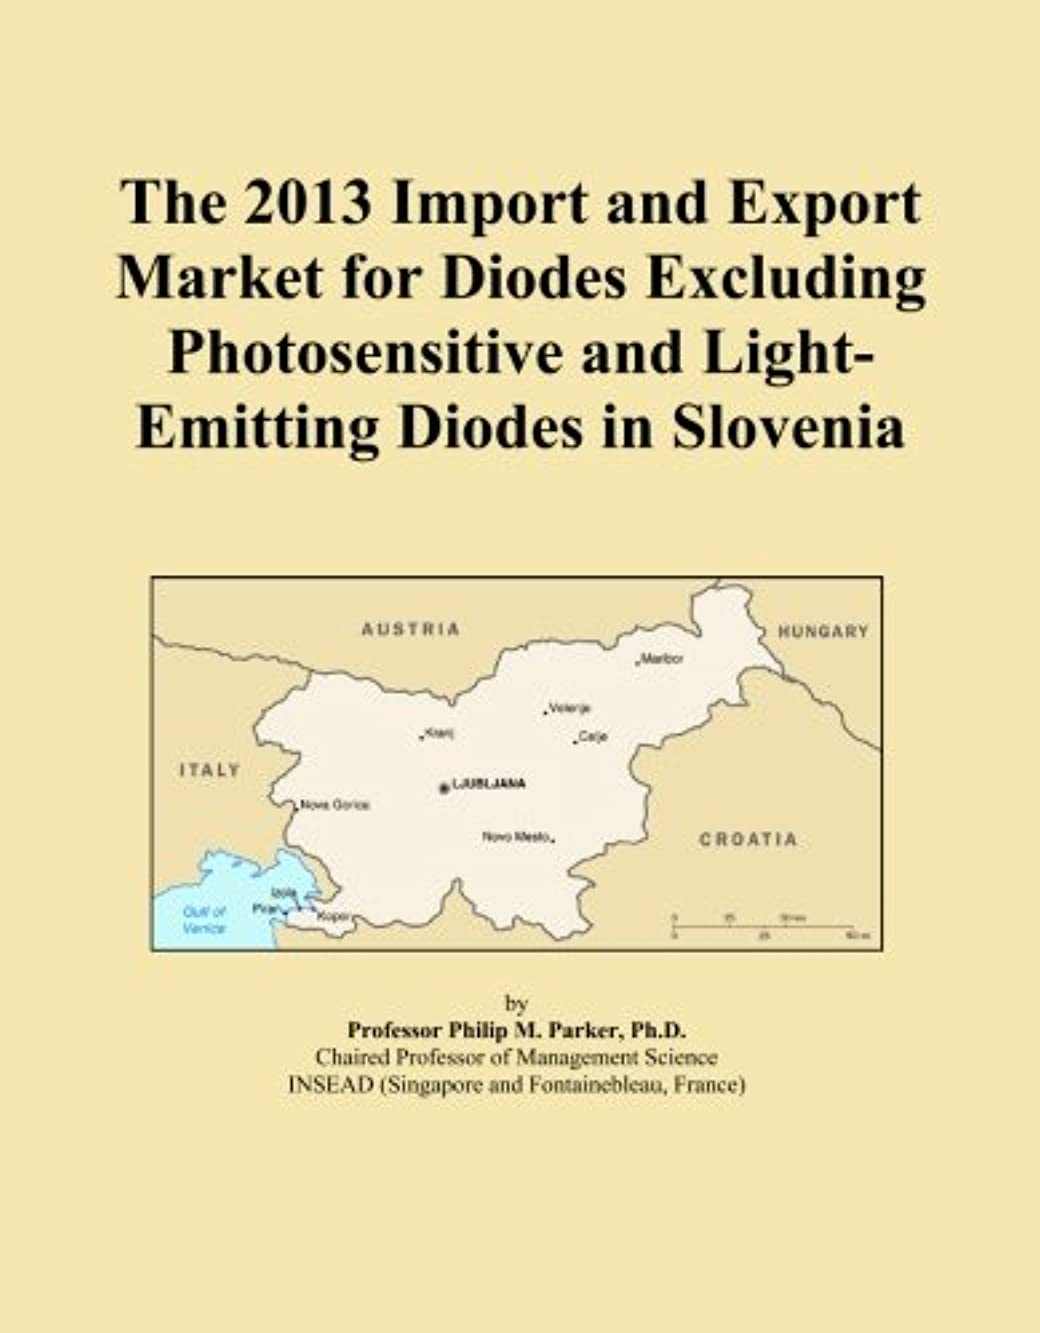 The 2013 Import and Export Market for Diodes Excluding Photosensitive and Light-Emitting Diodes in Slovenia